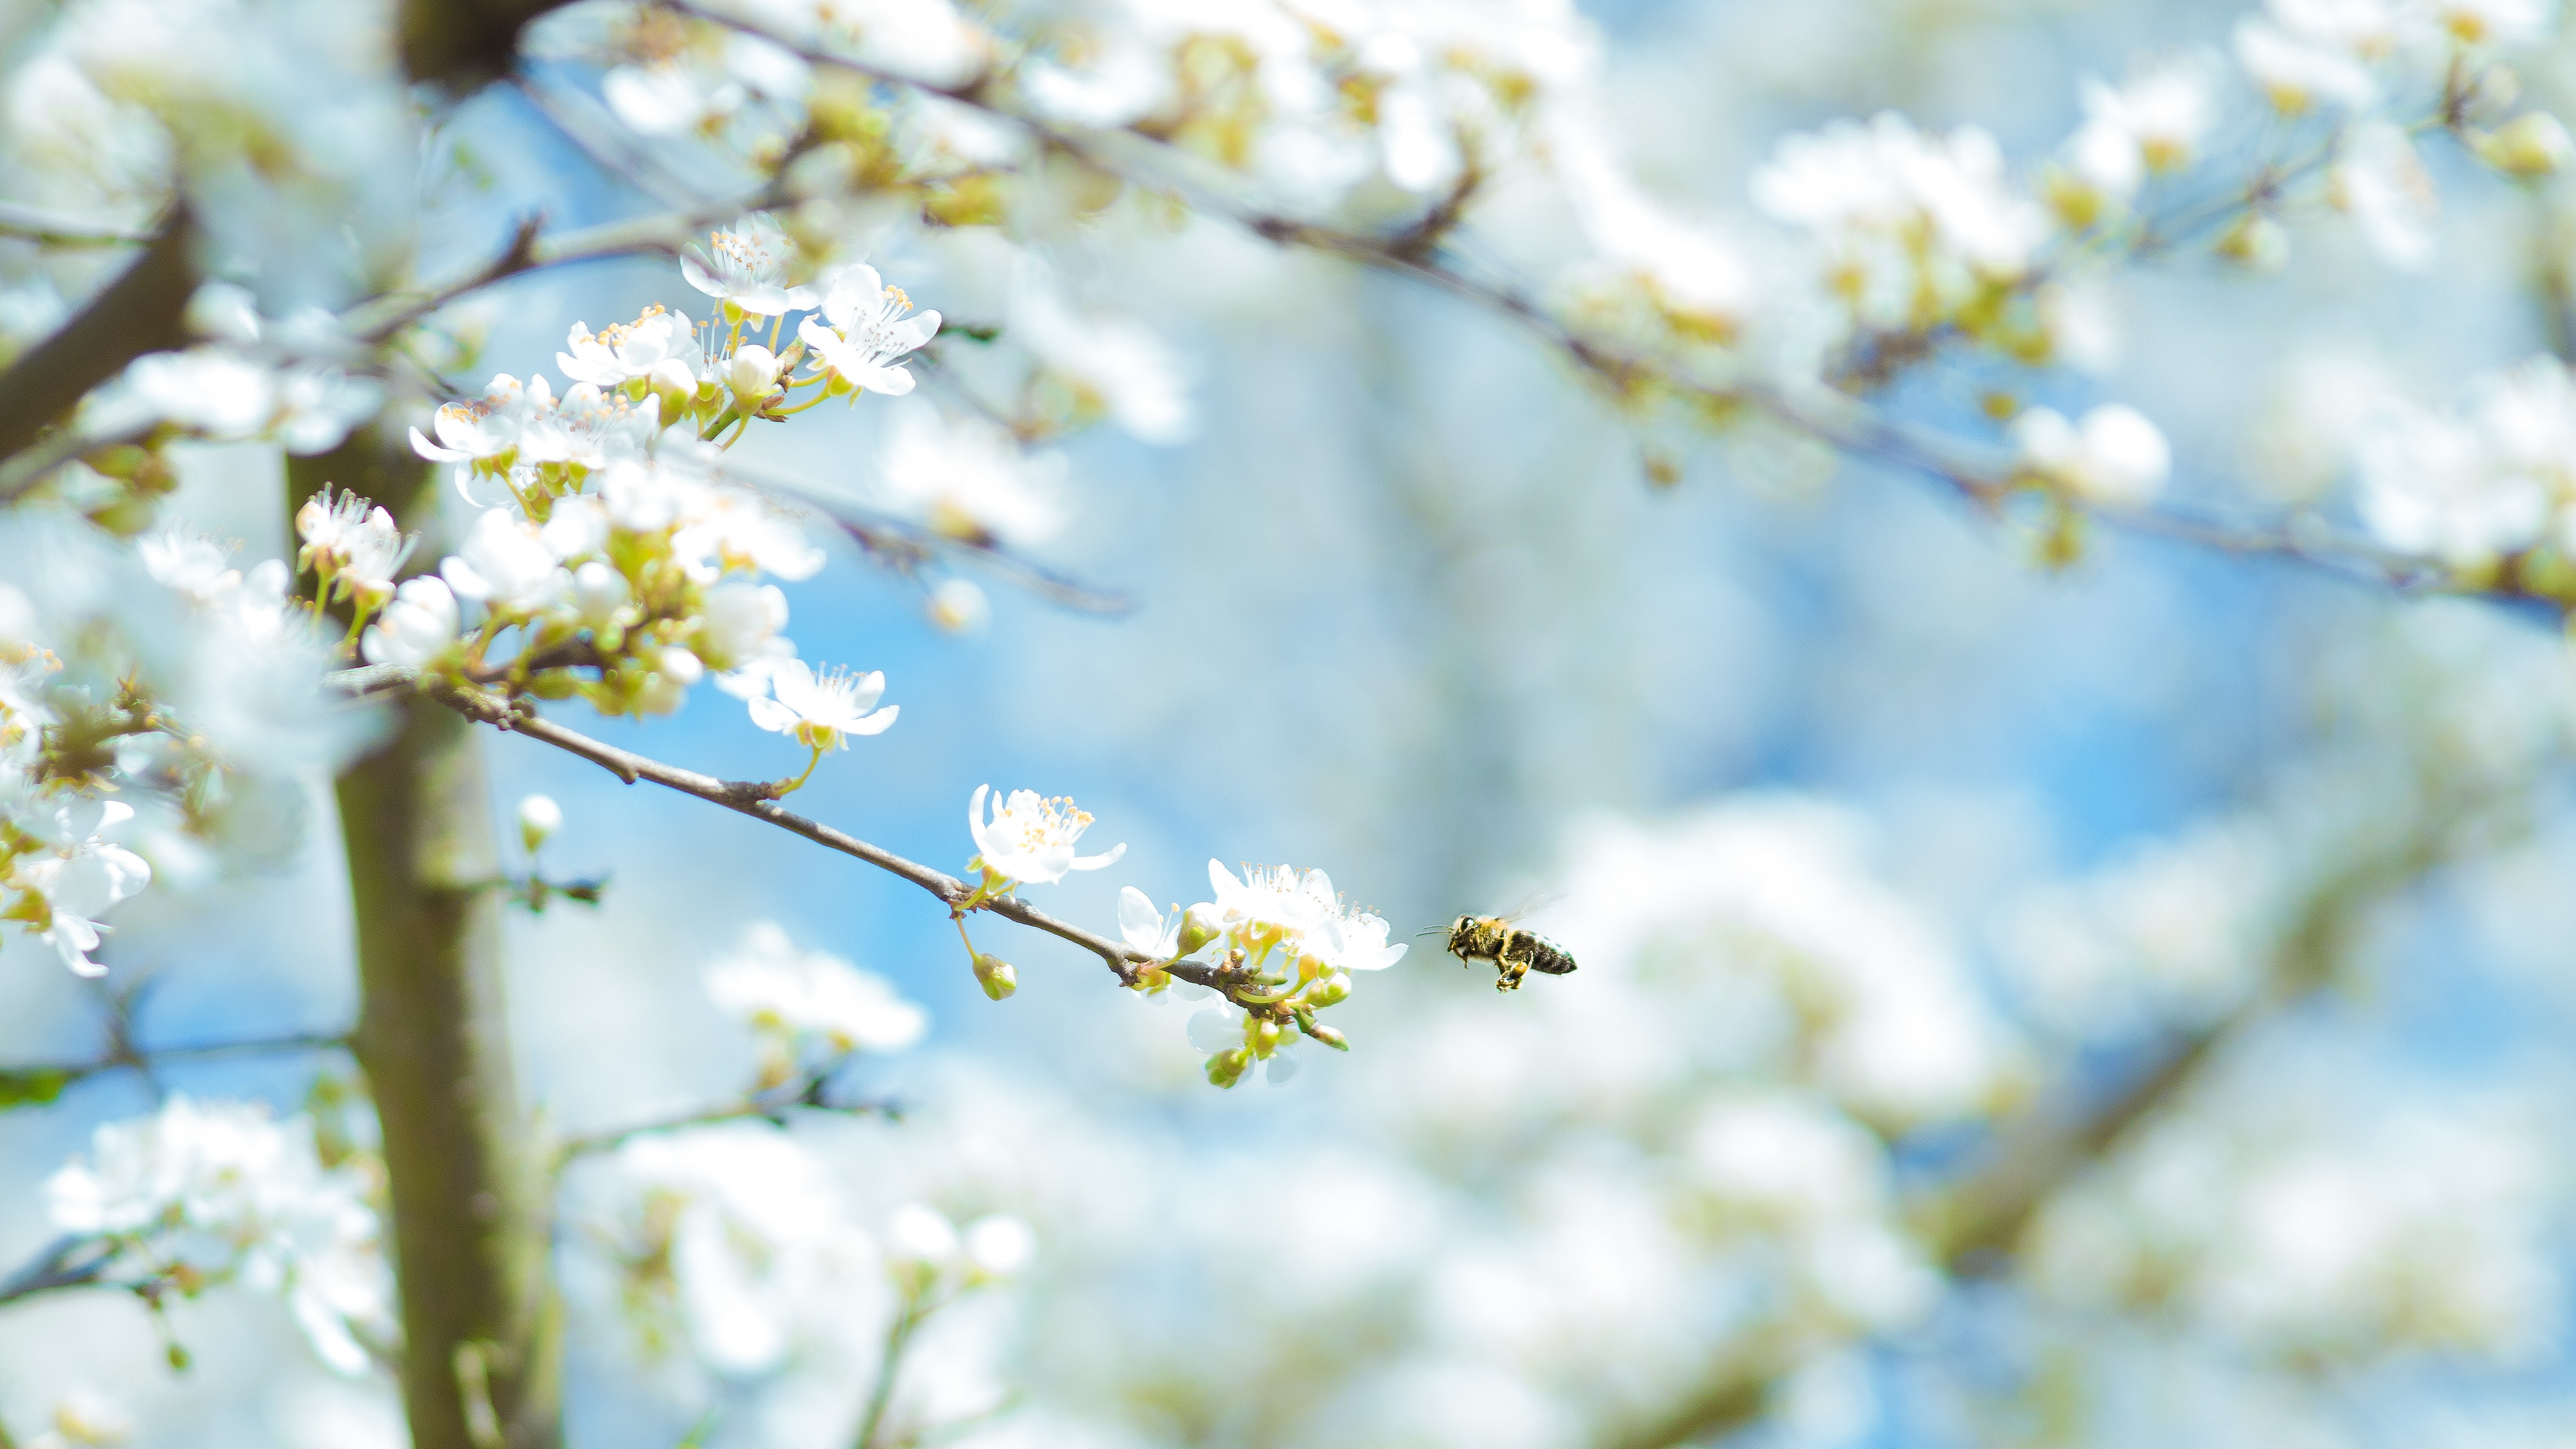 Insect flying towards branch with white blossom bud in bloom in Spring with blue sky